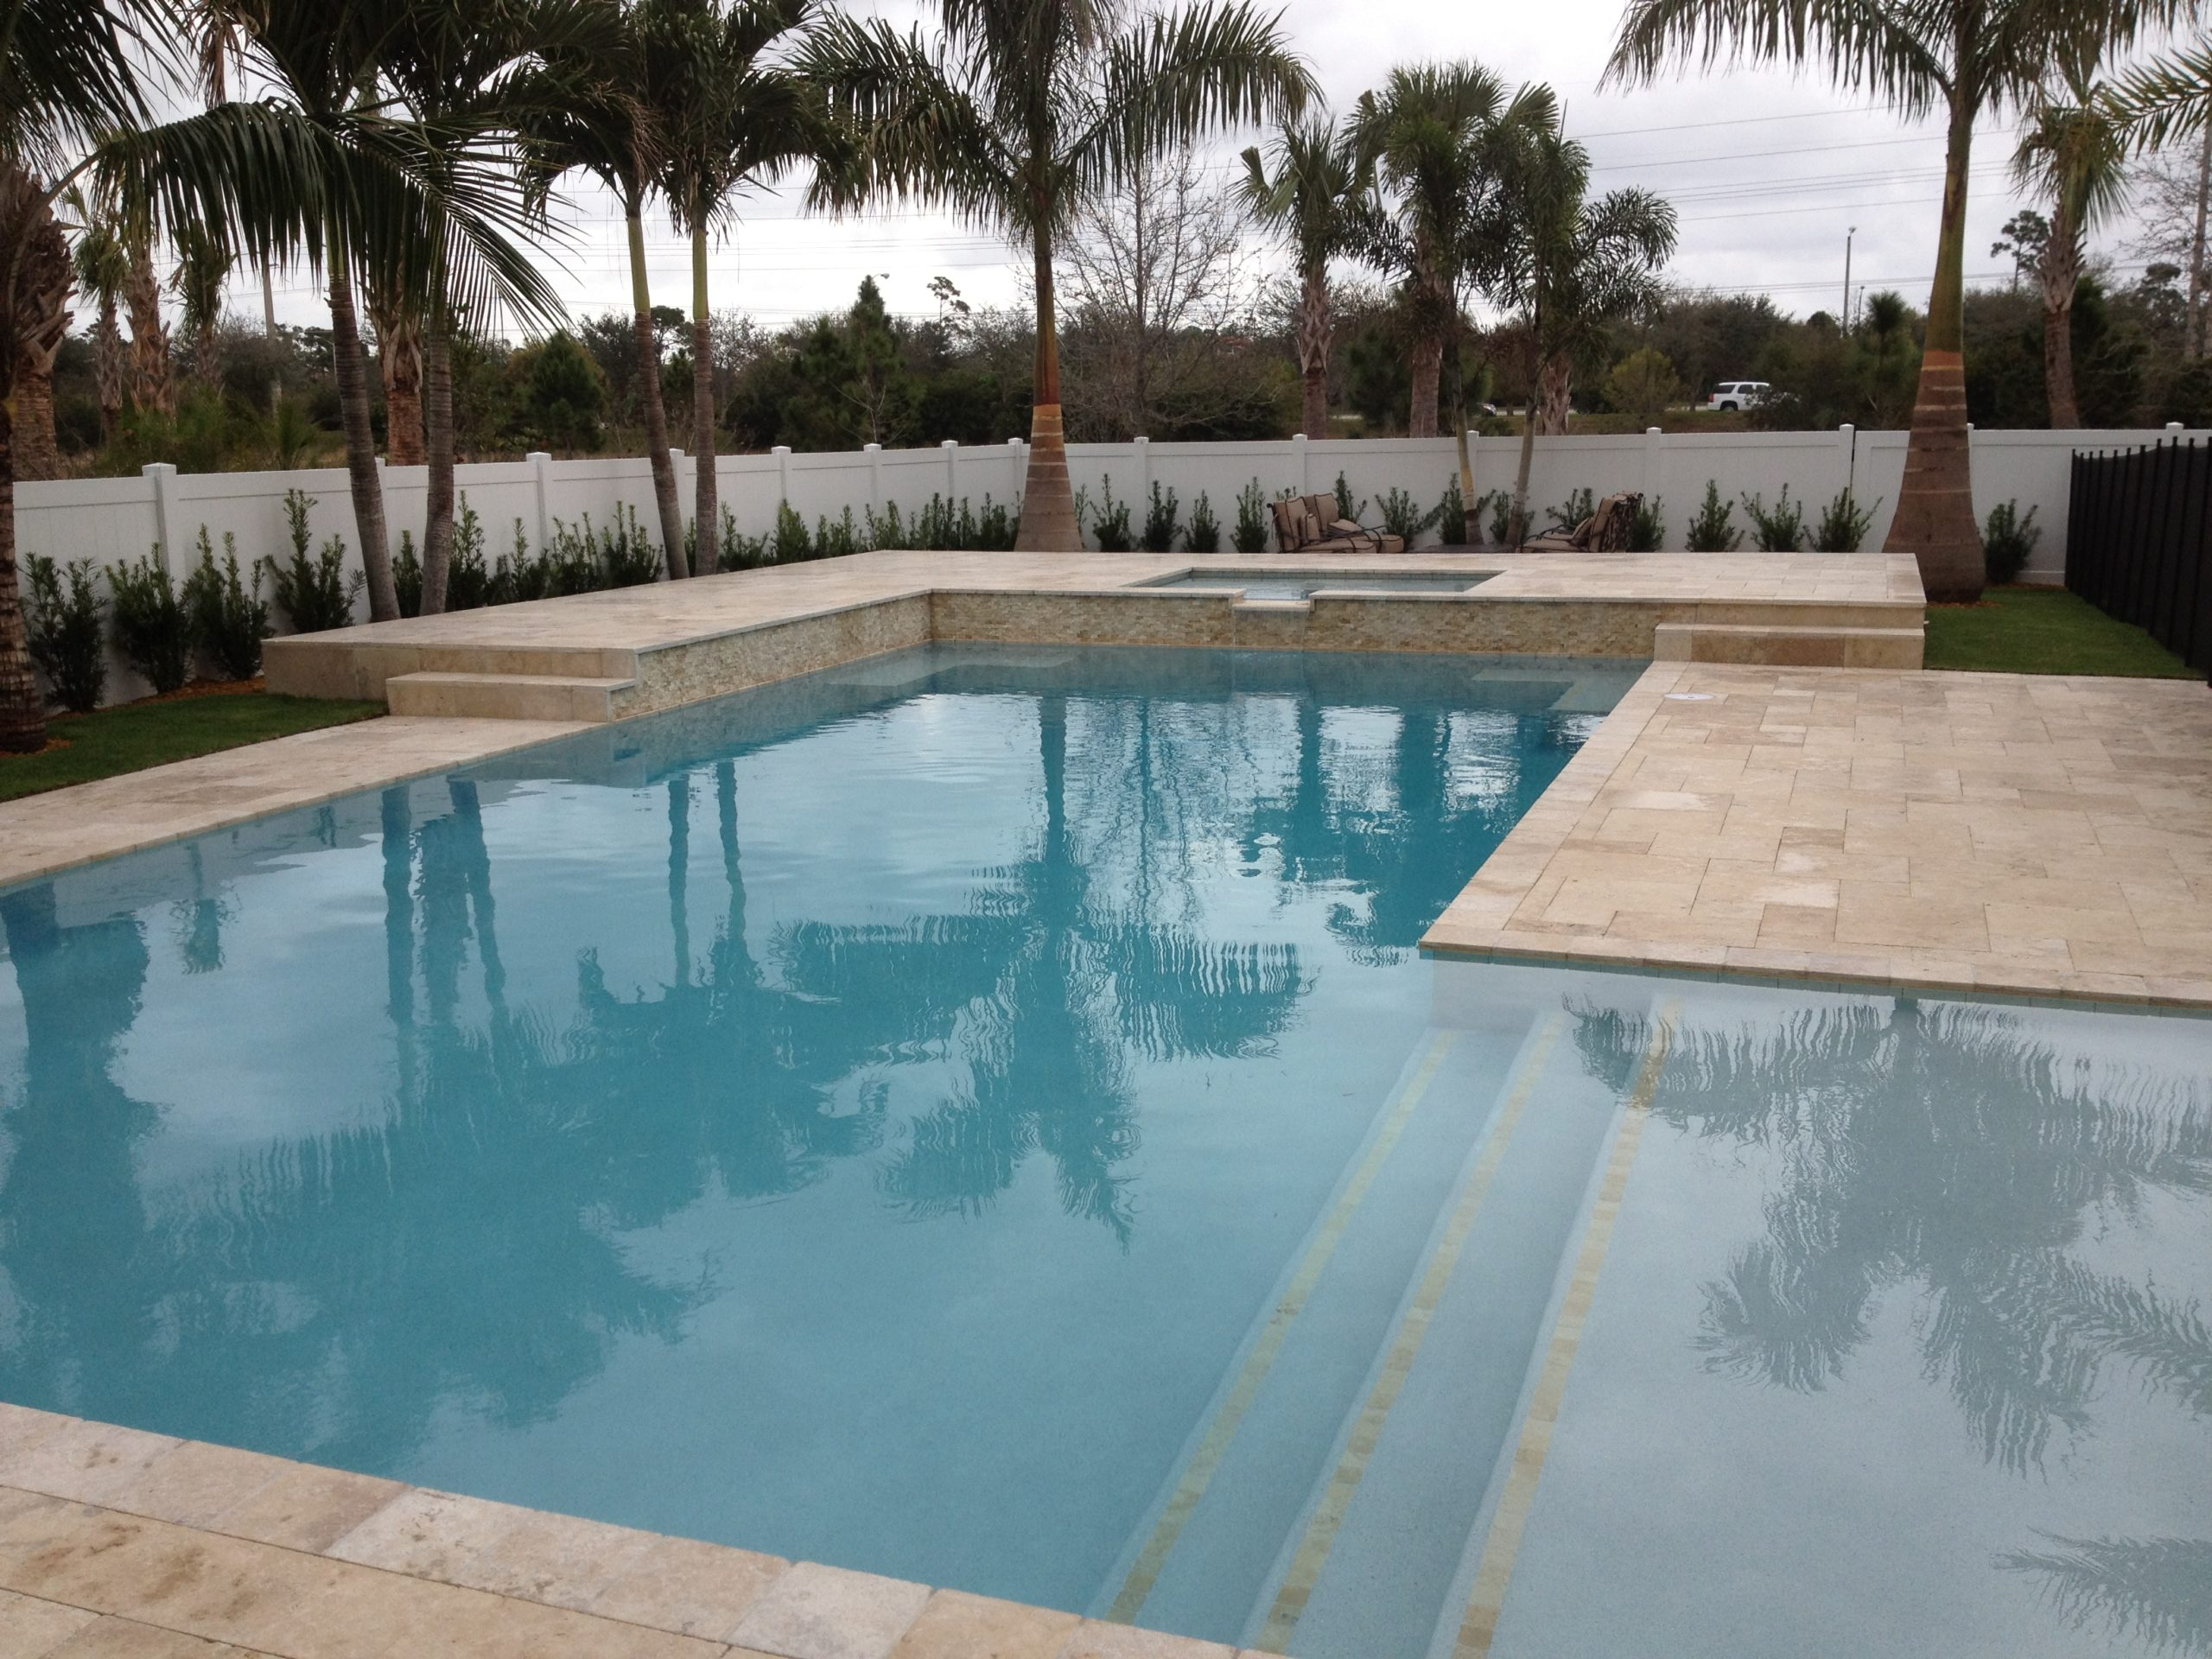 rhr pools of jupiter fl large sunshelf and raised area for entertaining